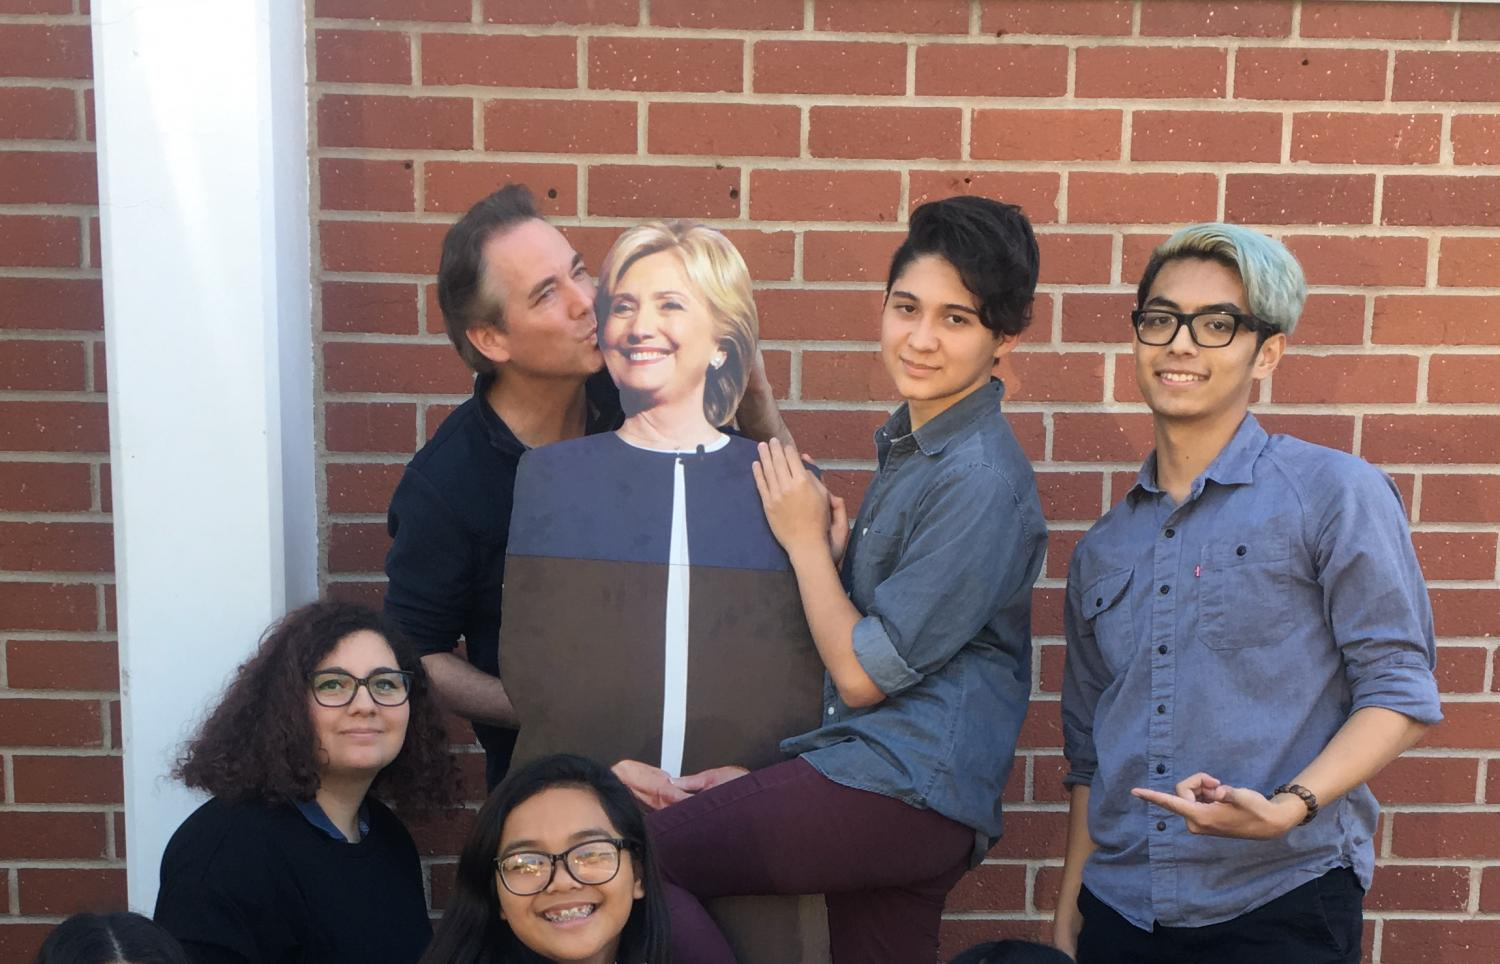 Mr. Over poses with Hilary Clinton, Liam McEvoy, Jarred Lima, Mary Vardanyan, and Sophia Arlantico.